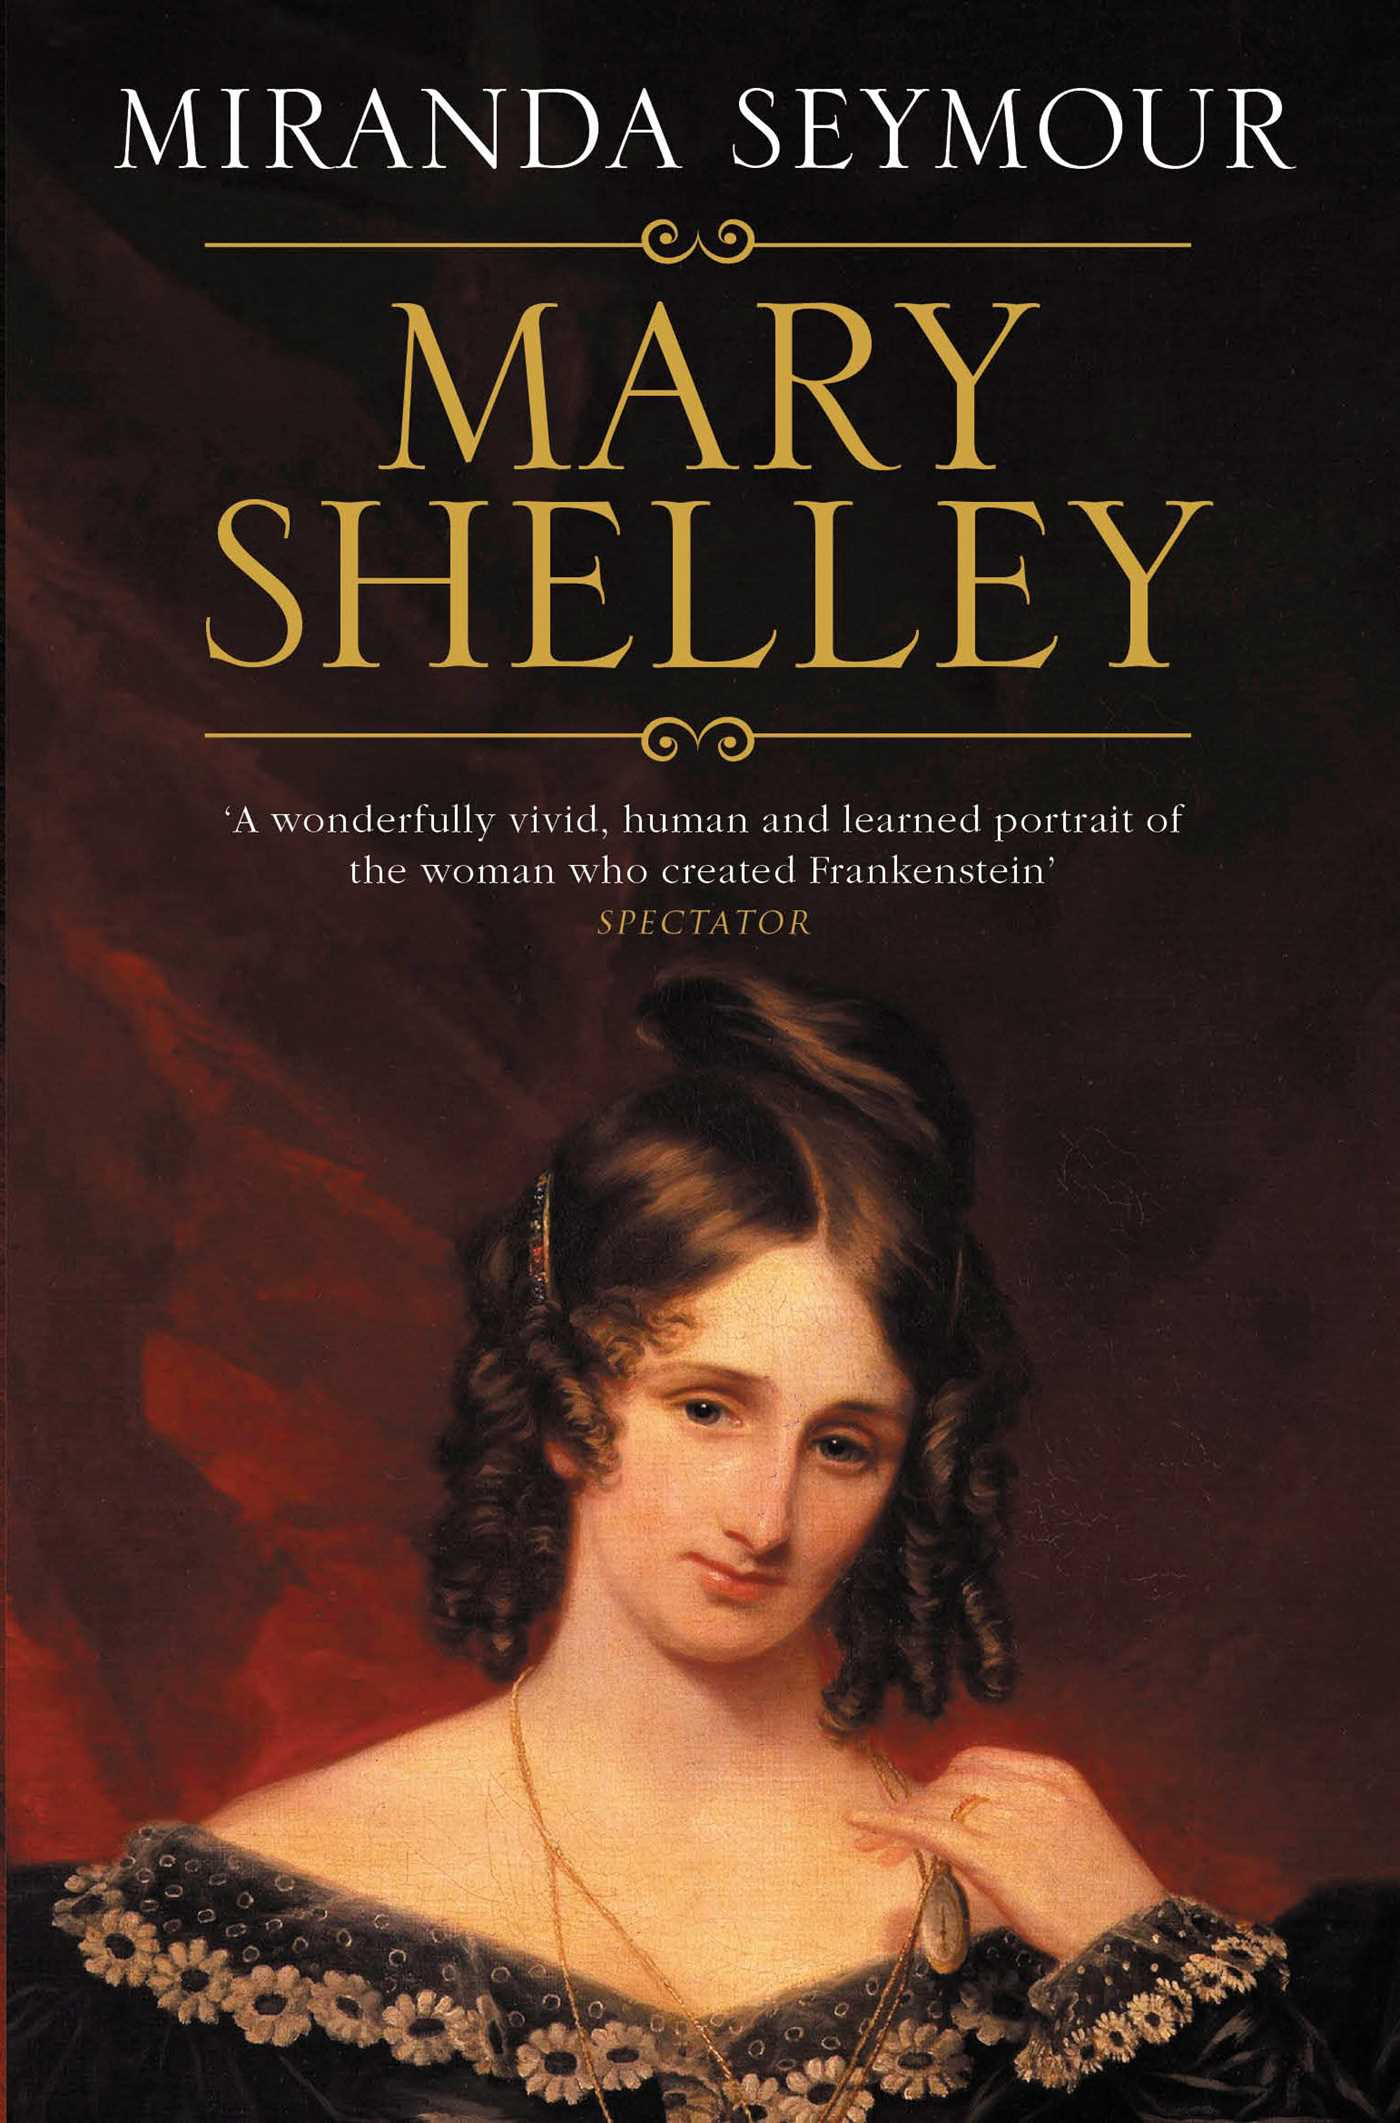 Mary Shelley | Book by Miranda Seymour | Official Publisher Page | Simon & Schuster UK